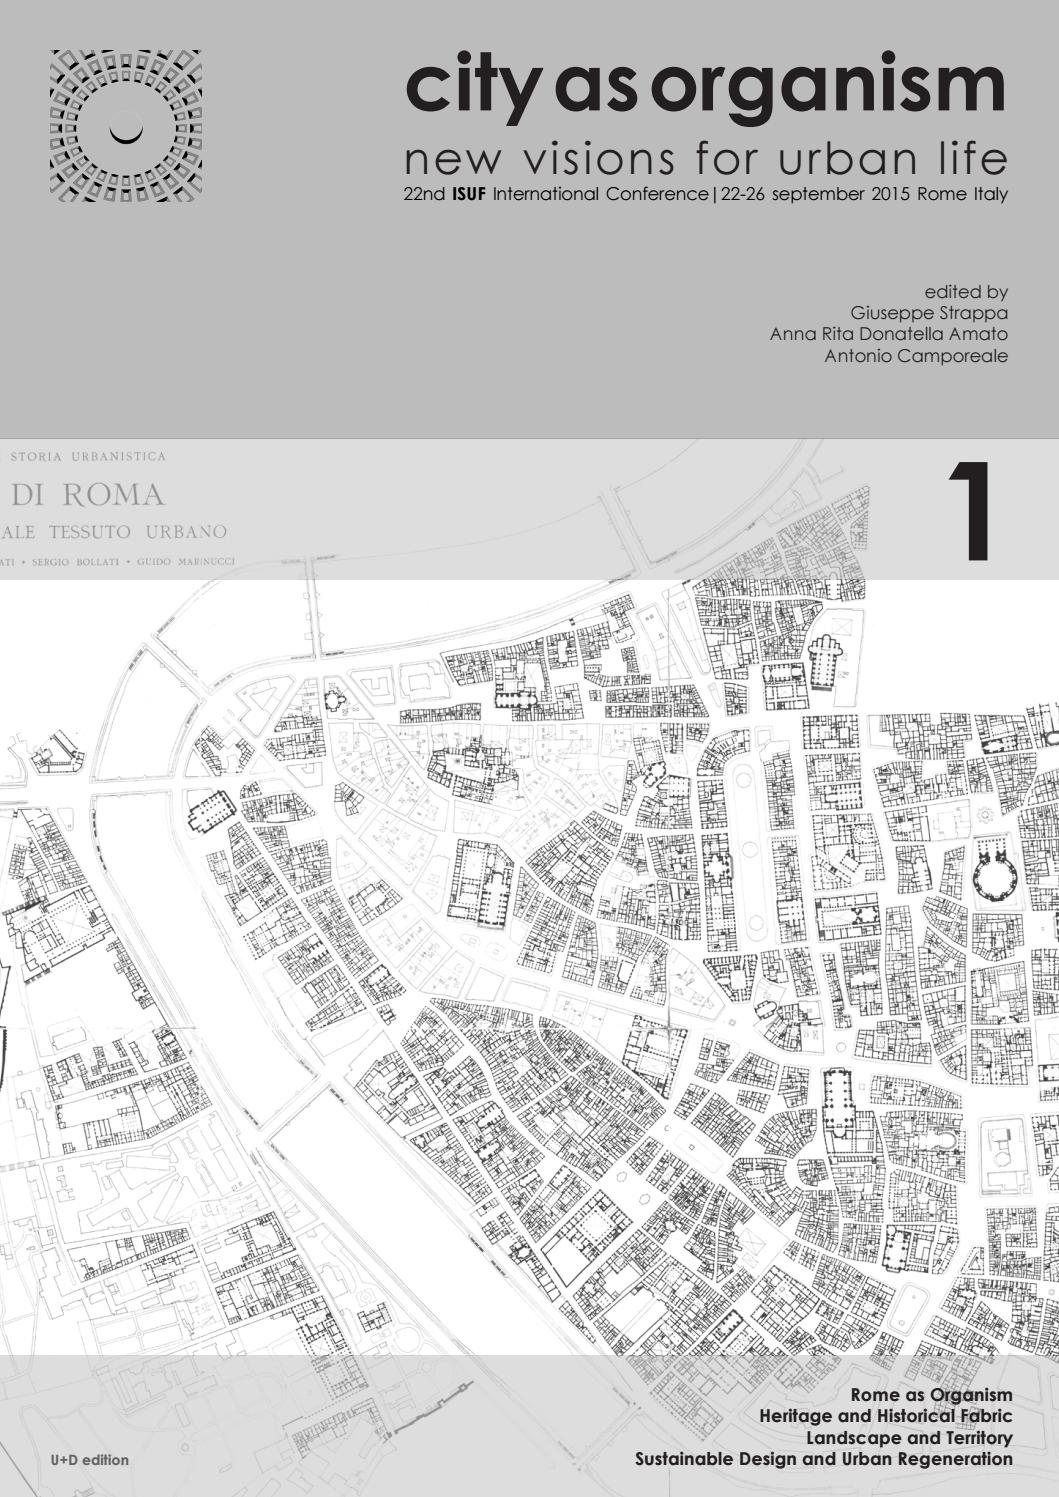 Design Construction Et Associés Granville city as organism isuf rome 2015 | volume 1_part 1u+d